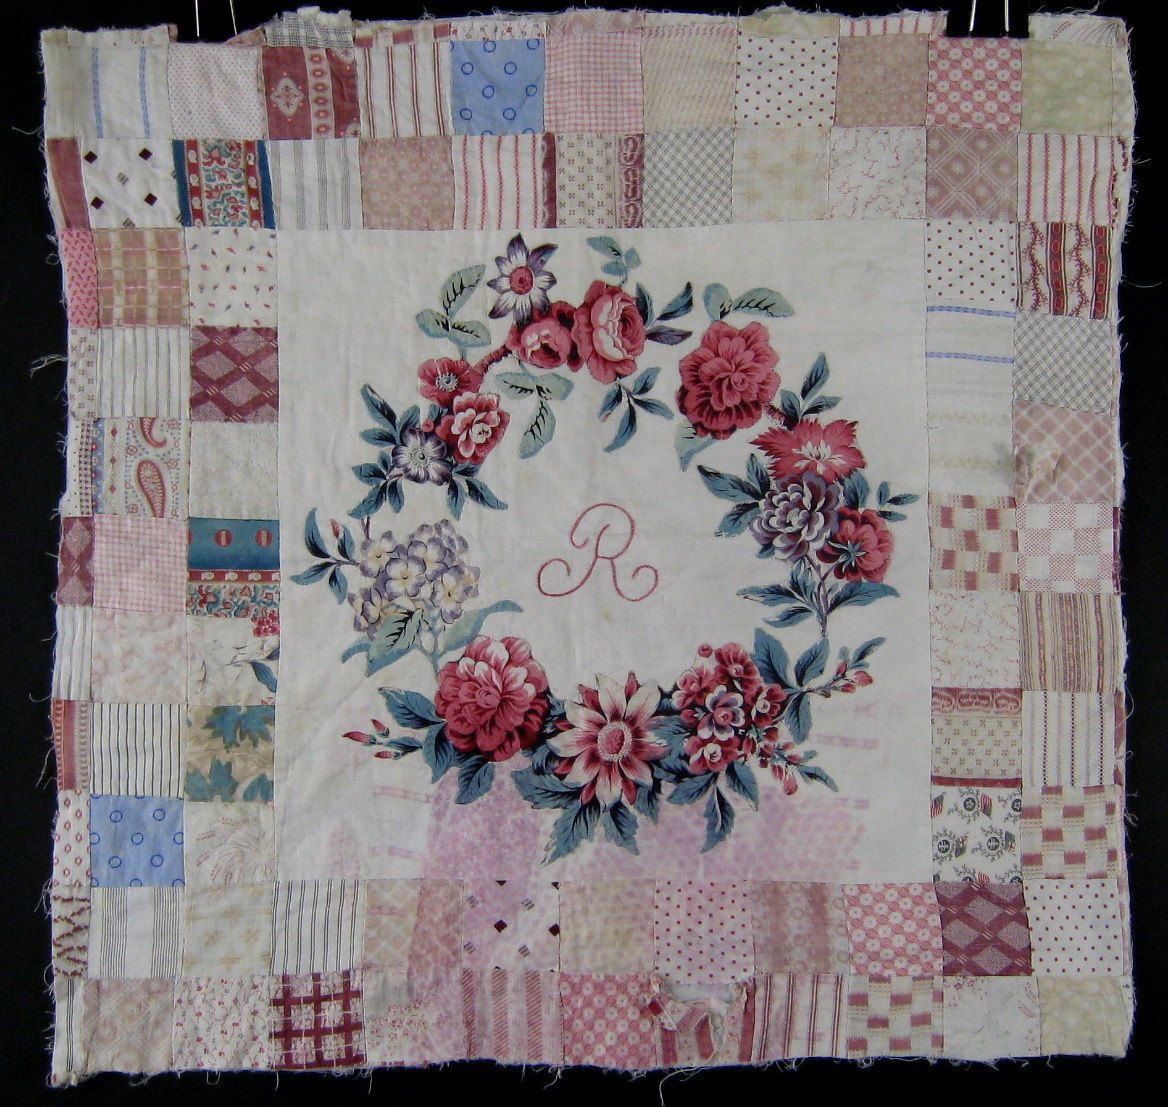 Antique Broderie Perse Applique Quilt Square c.1830 by unfocused ...